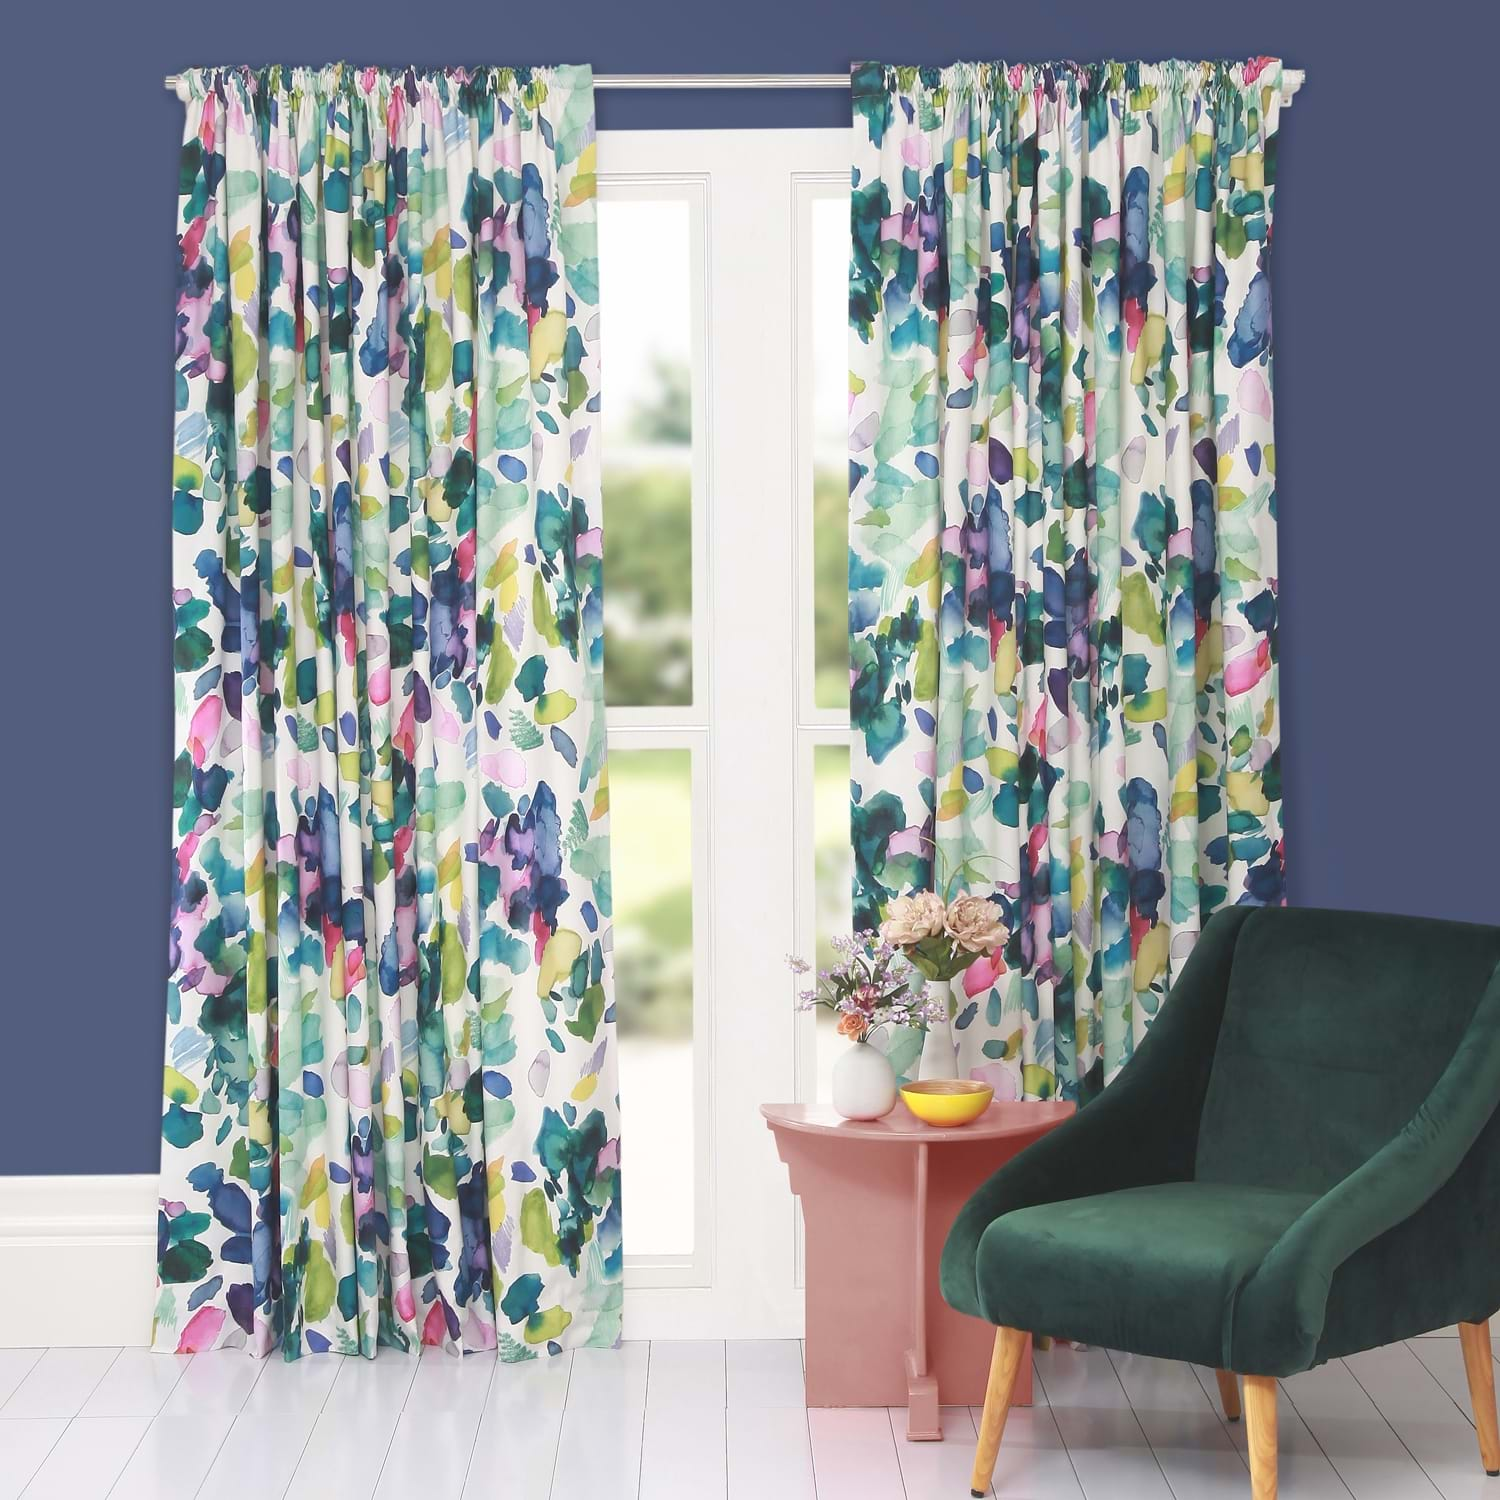 Image of Bluebellgray Palette Curtains 228 x 228cm, Multicoloured